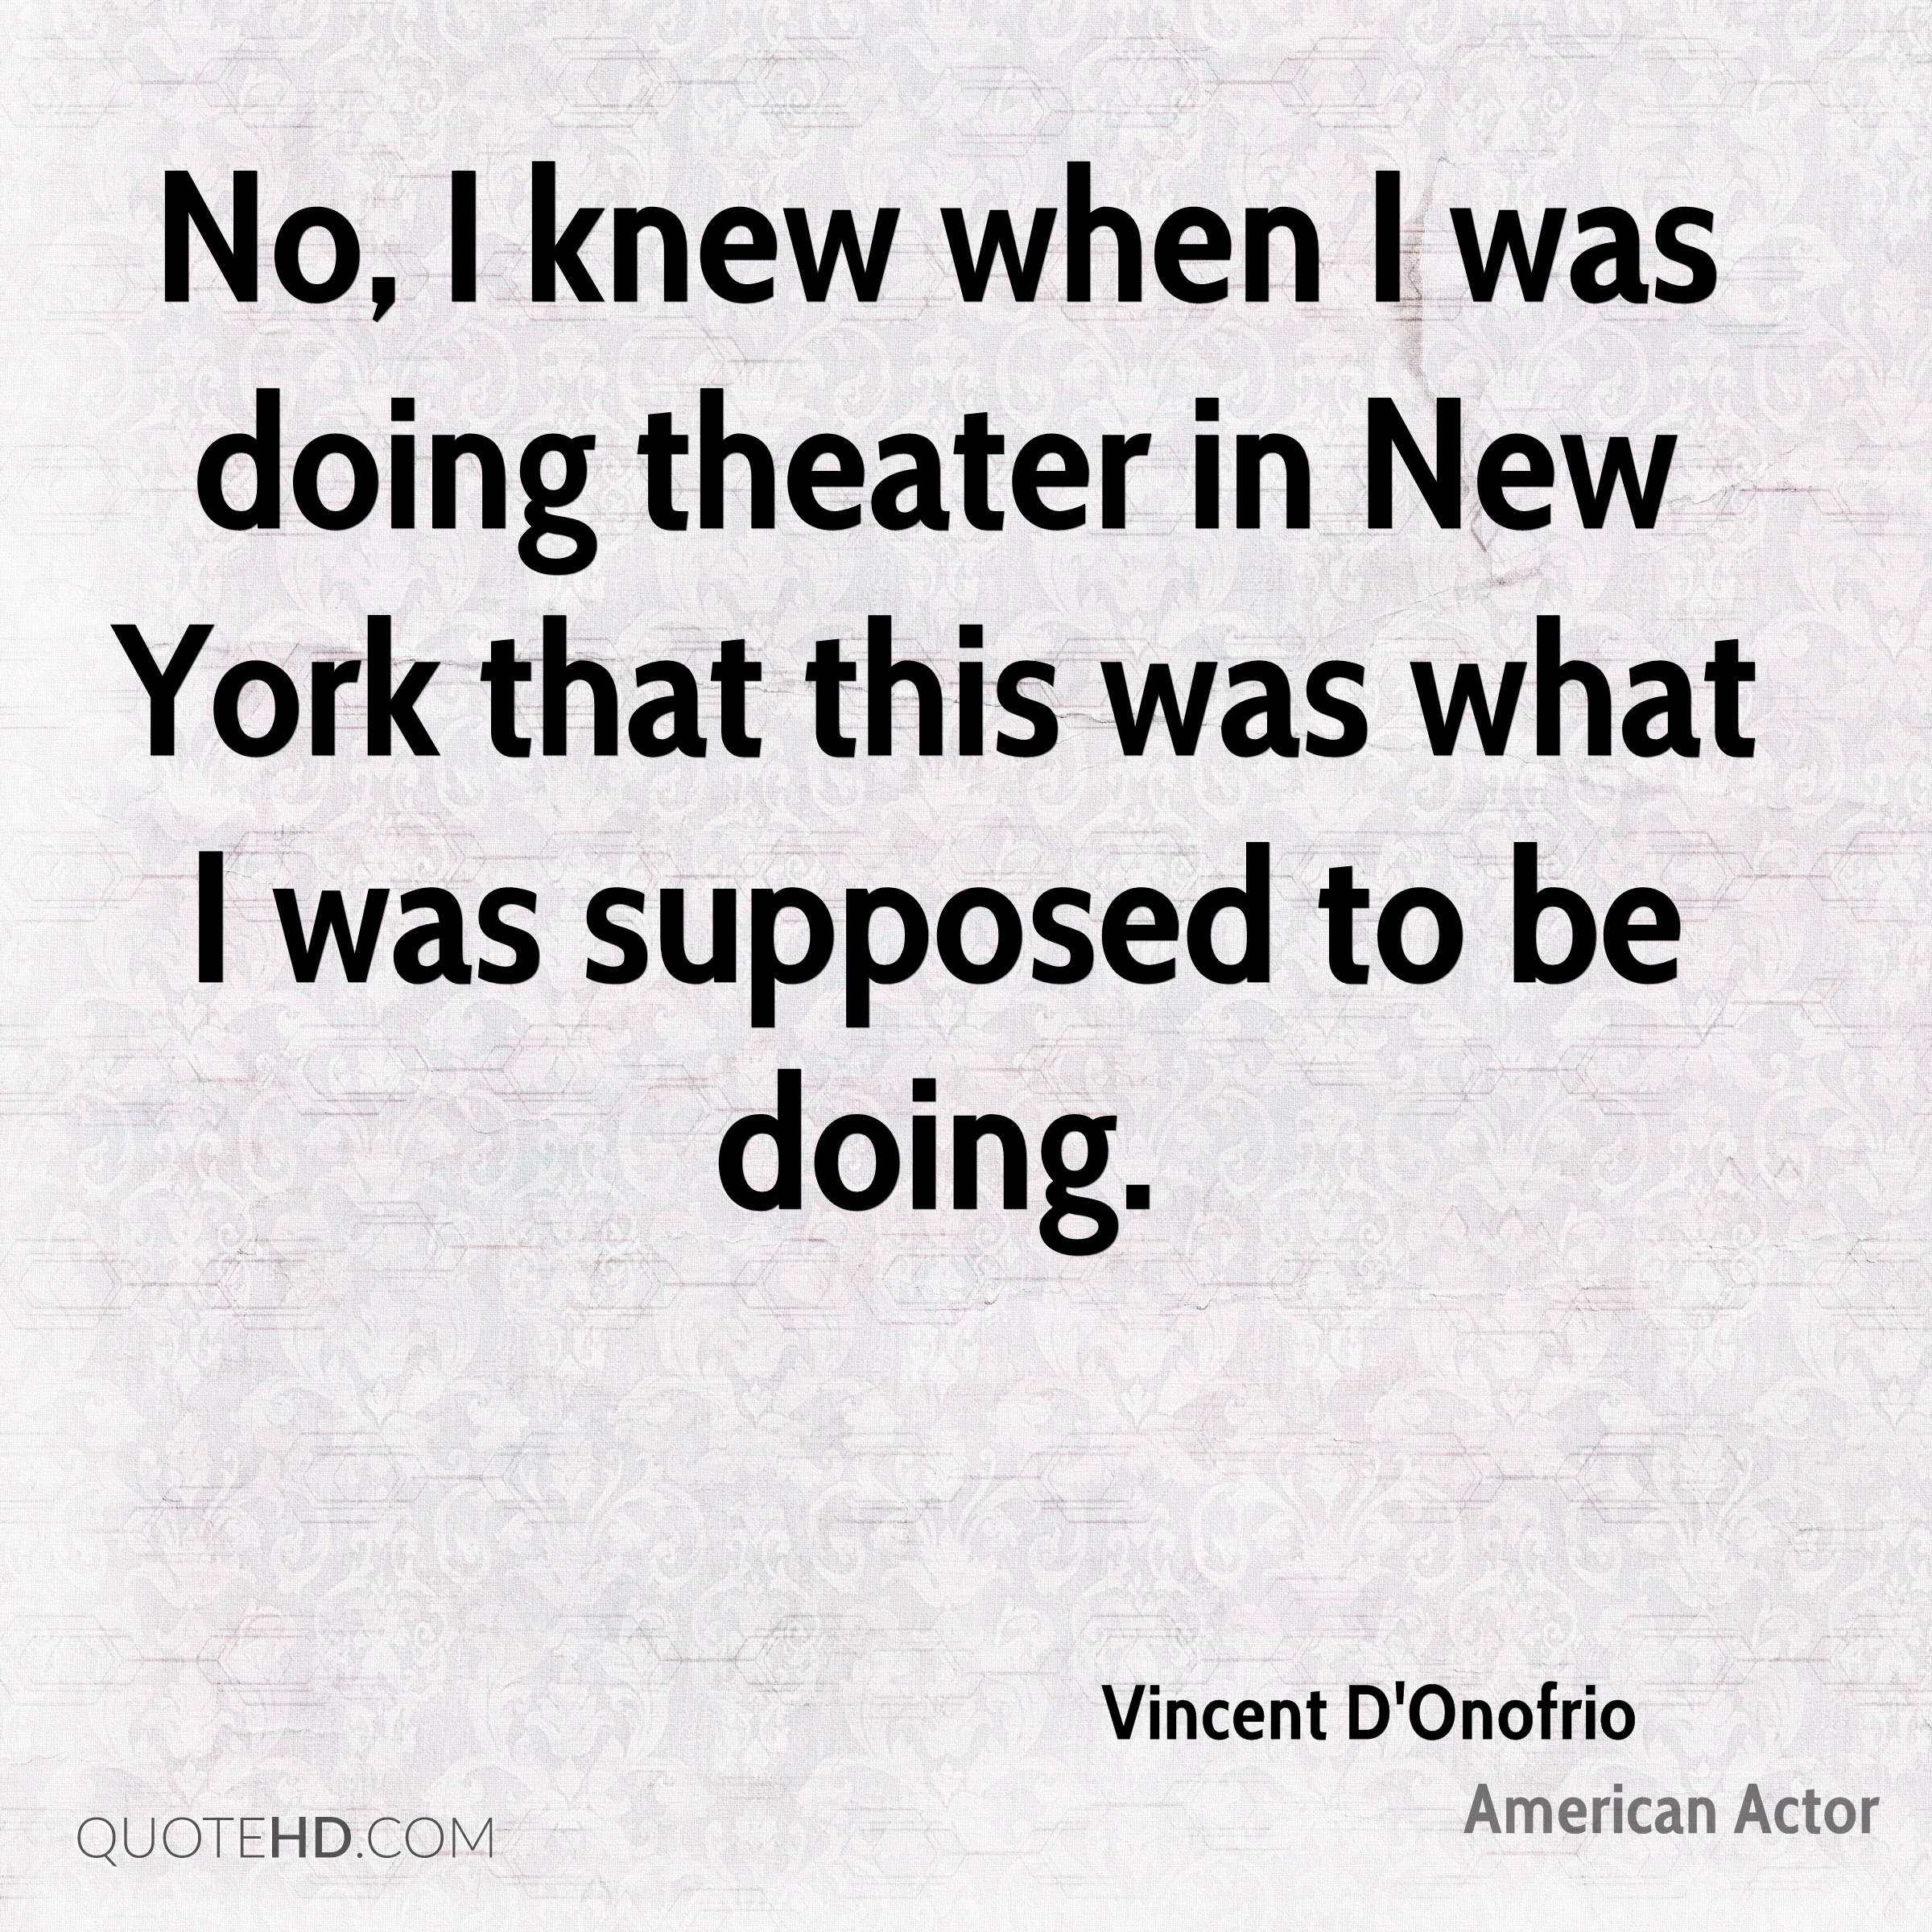 No, I knew when I was doing theater in New York that this was what I was supposed to be doing.